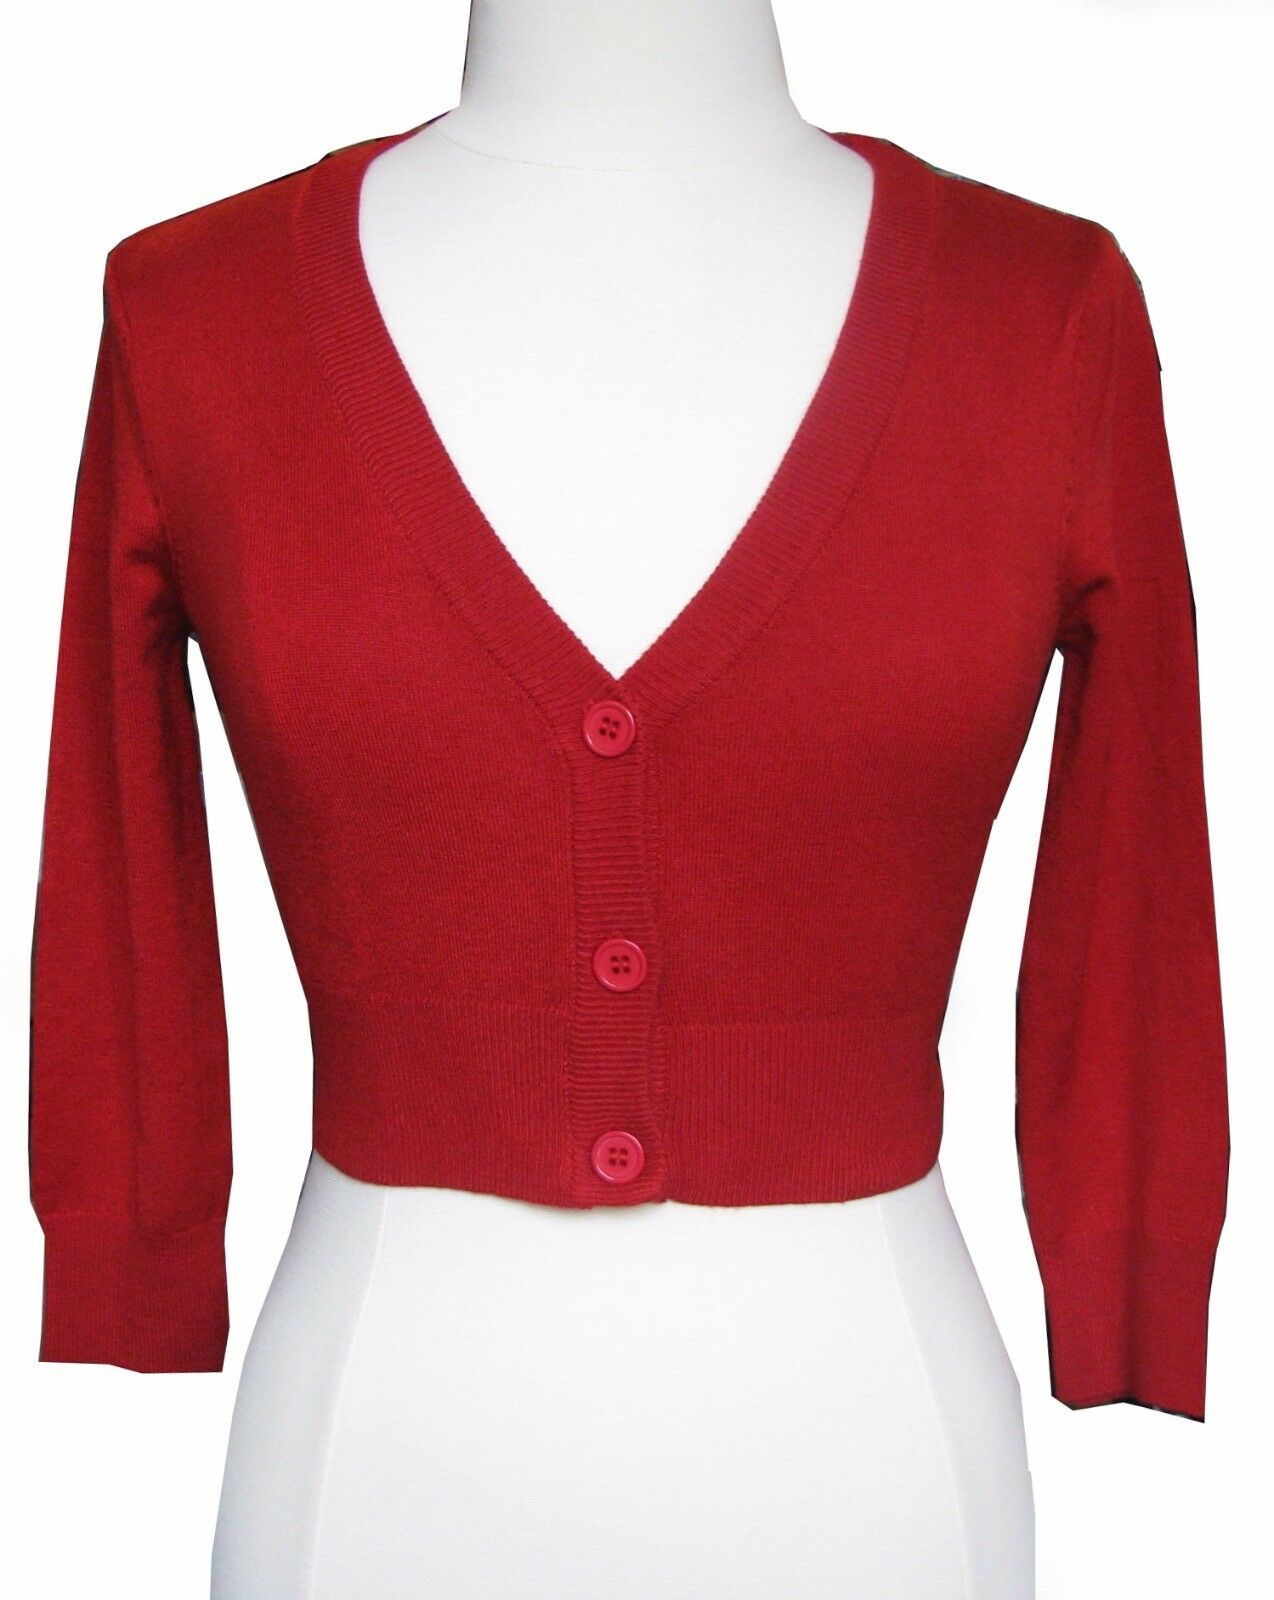 Cherry Red Cropped V-neck Cardigan Sweater Pinup Retro Rockabilly ...